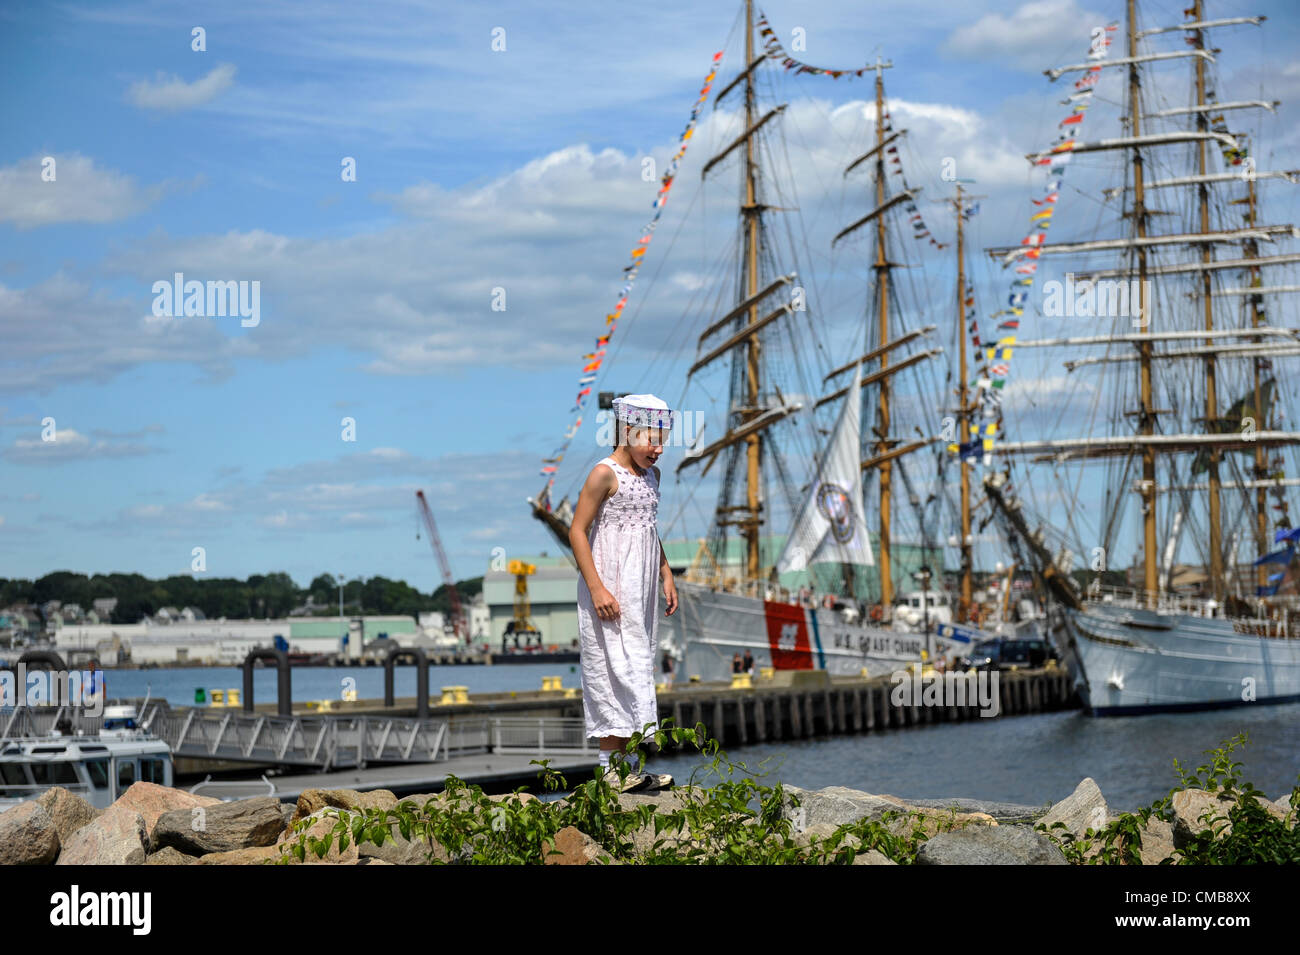 New London, Connecticut, USA - July 9, 2012: Nine-year-old Amelia Baca in sailor cap visiting her sister, United - Stock Image